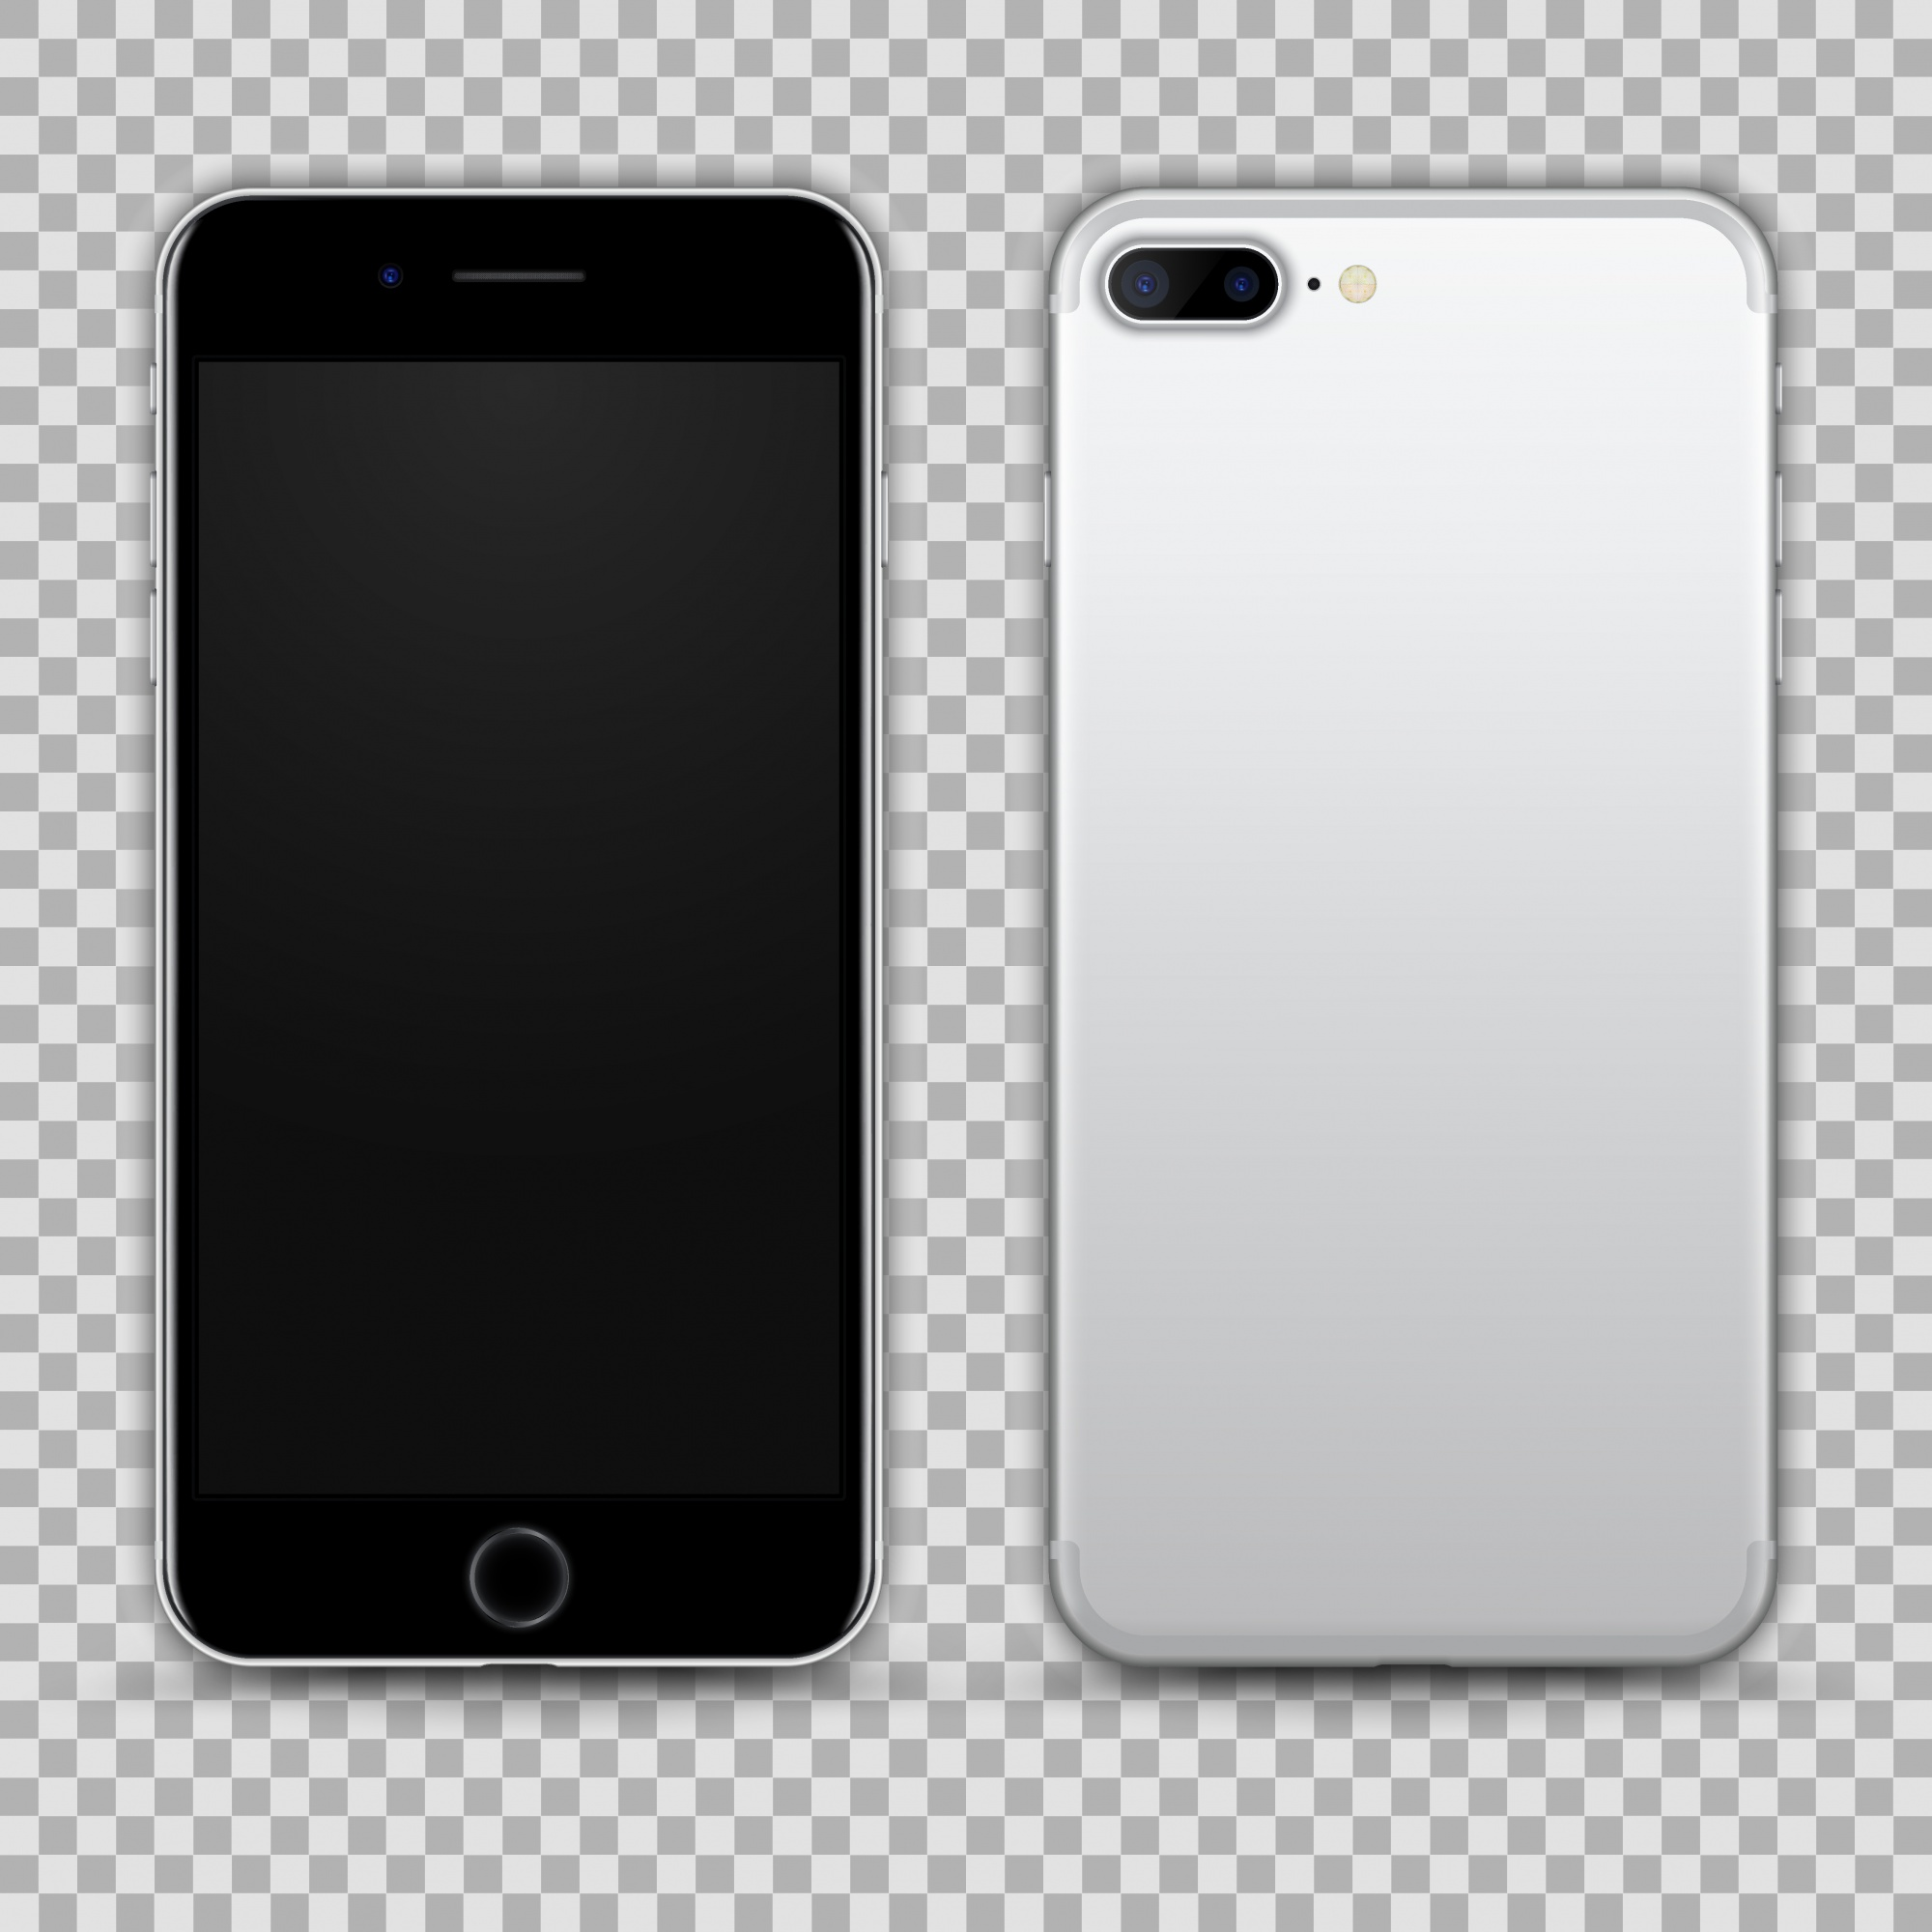 Realistic Silver Black Smartphone isolated on Transparent Background. Front and Back View